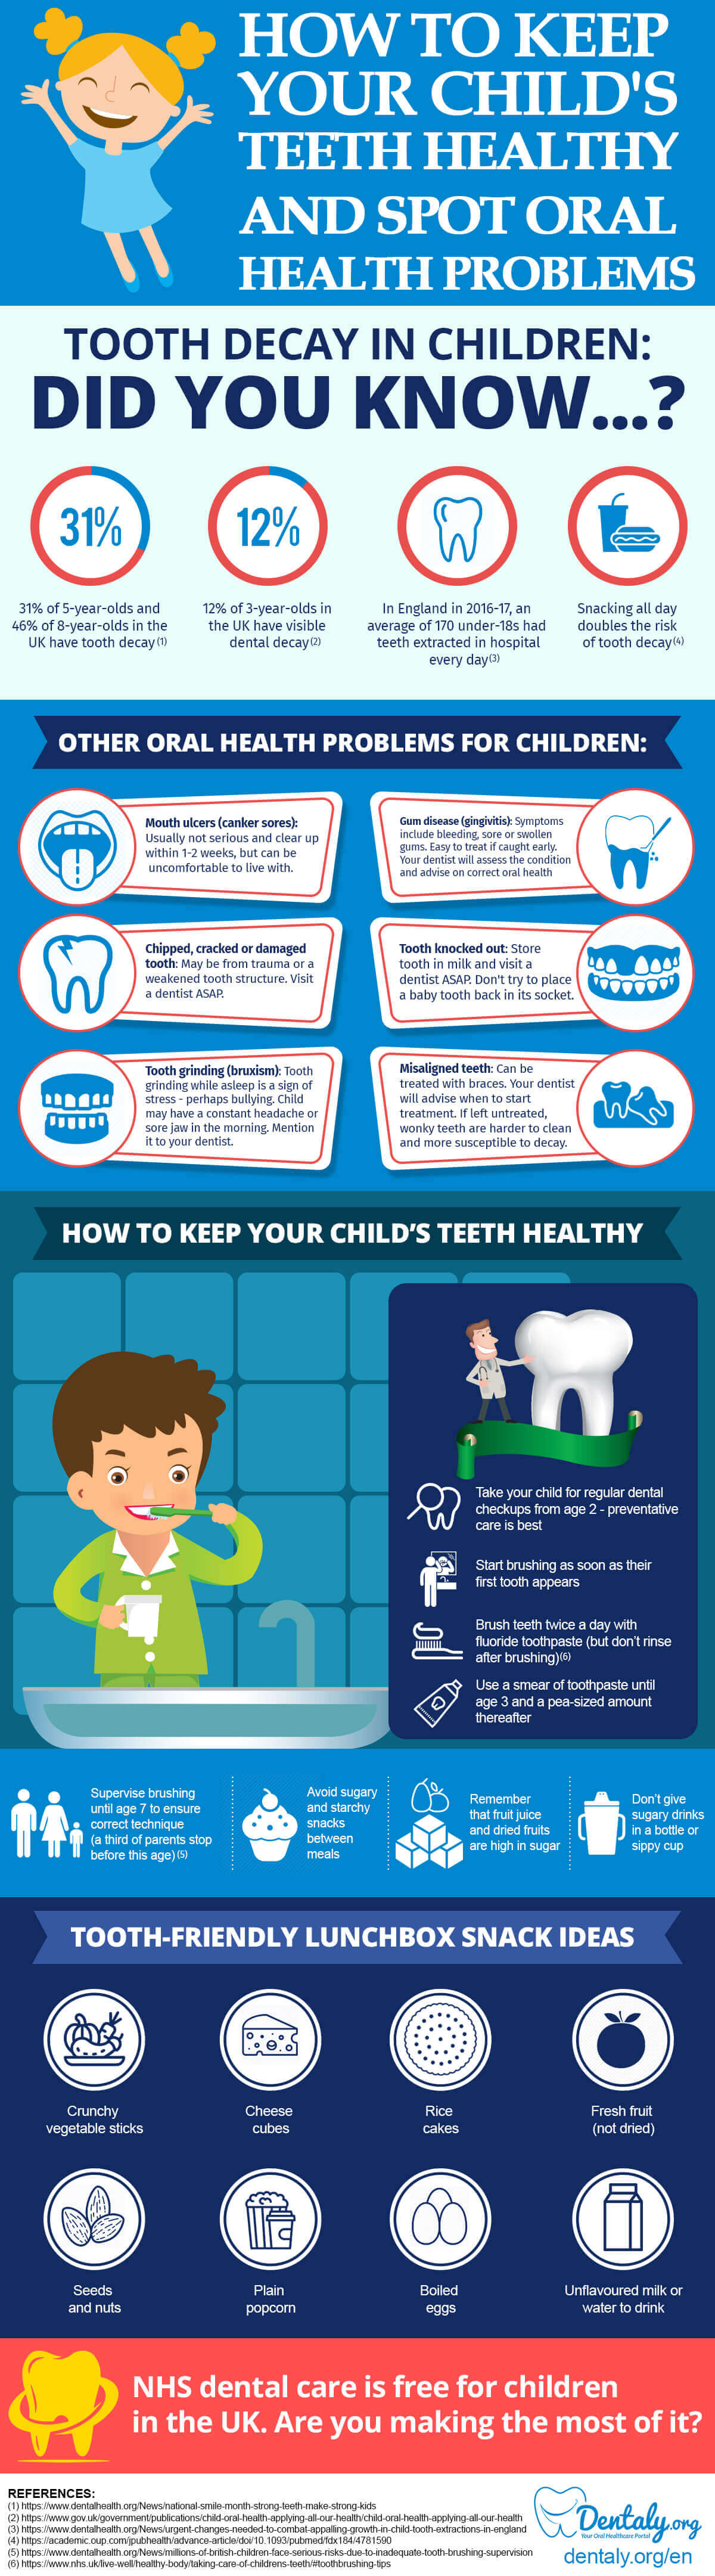 infographic02 6 - How to Identify & Prevent Tooth Decay in Children